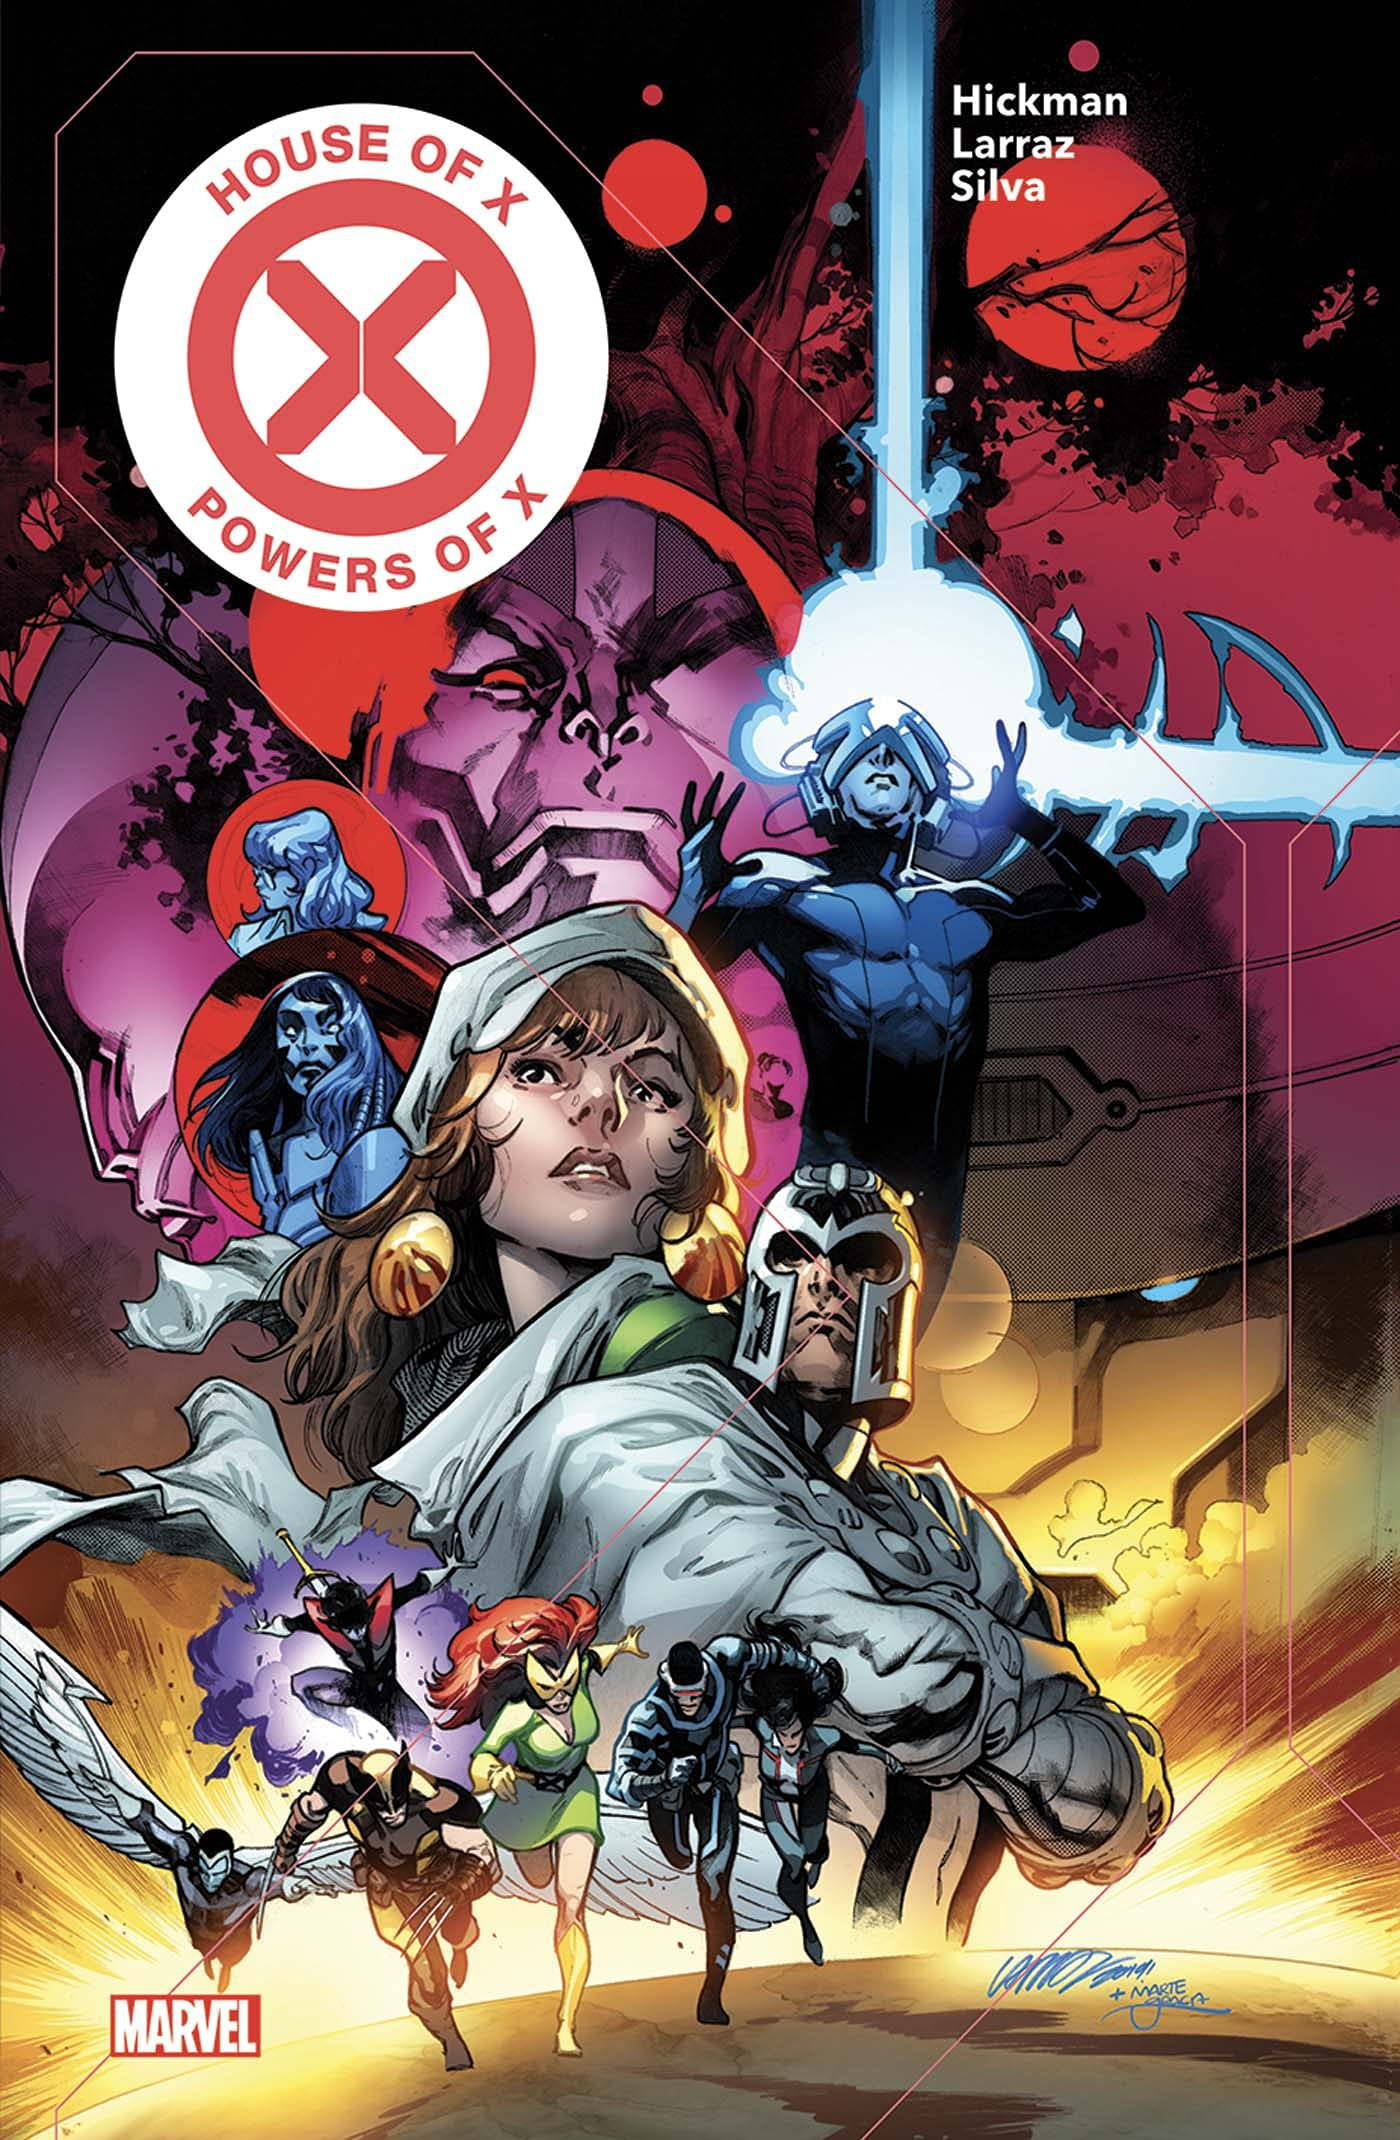 House of X/Power of X